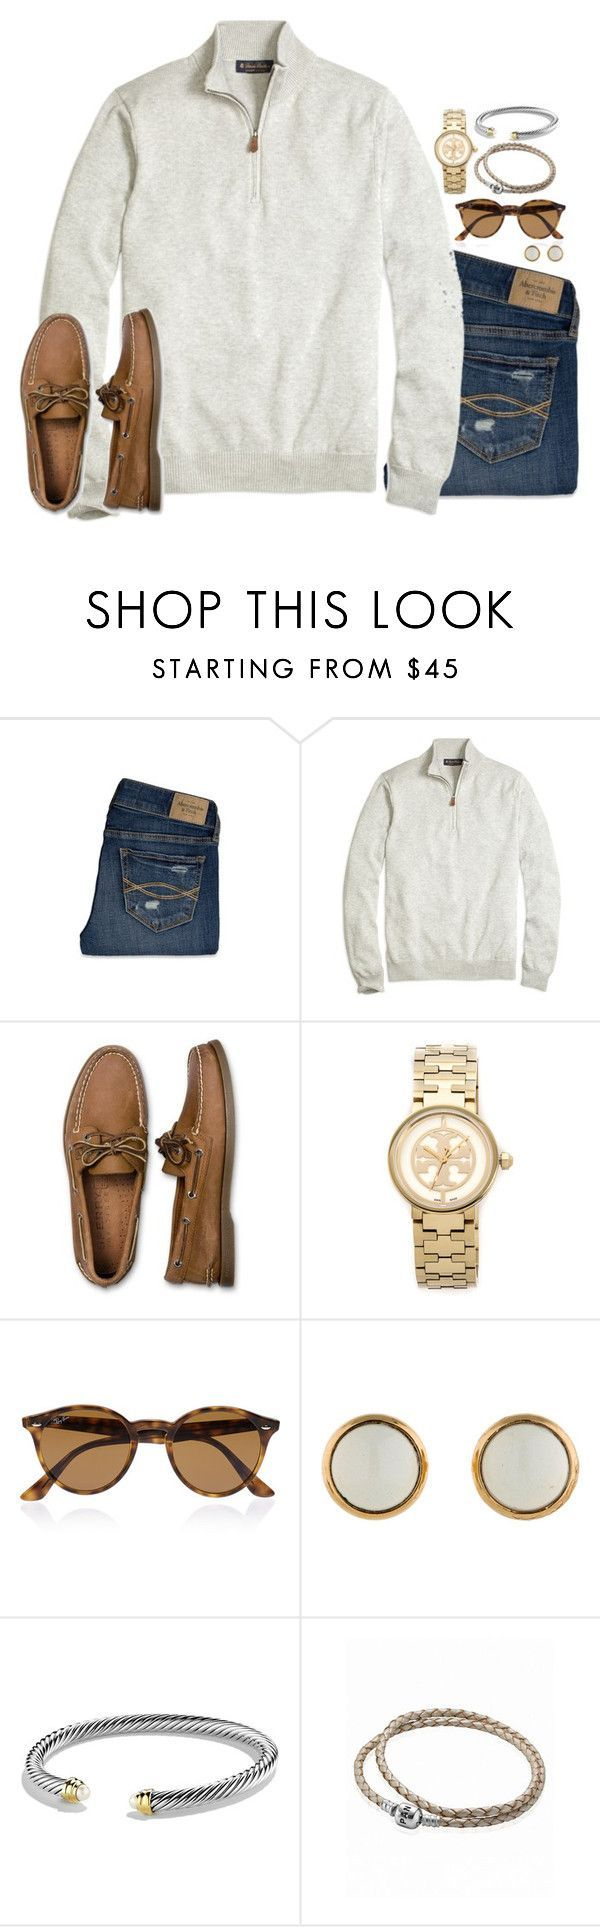 """I must've called a thousand times, to tell you I'm sorry for everything that I've done"" by preppy-classy ❤ liked on Polyvore featuring Abercrombie & Fitch, Brooks Brothers, Sperry Top-Sider, Tory Burch, Ray-Ban, Hermès, David Yurman and Pandora"